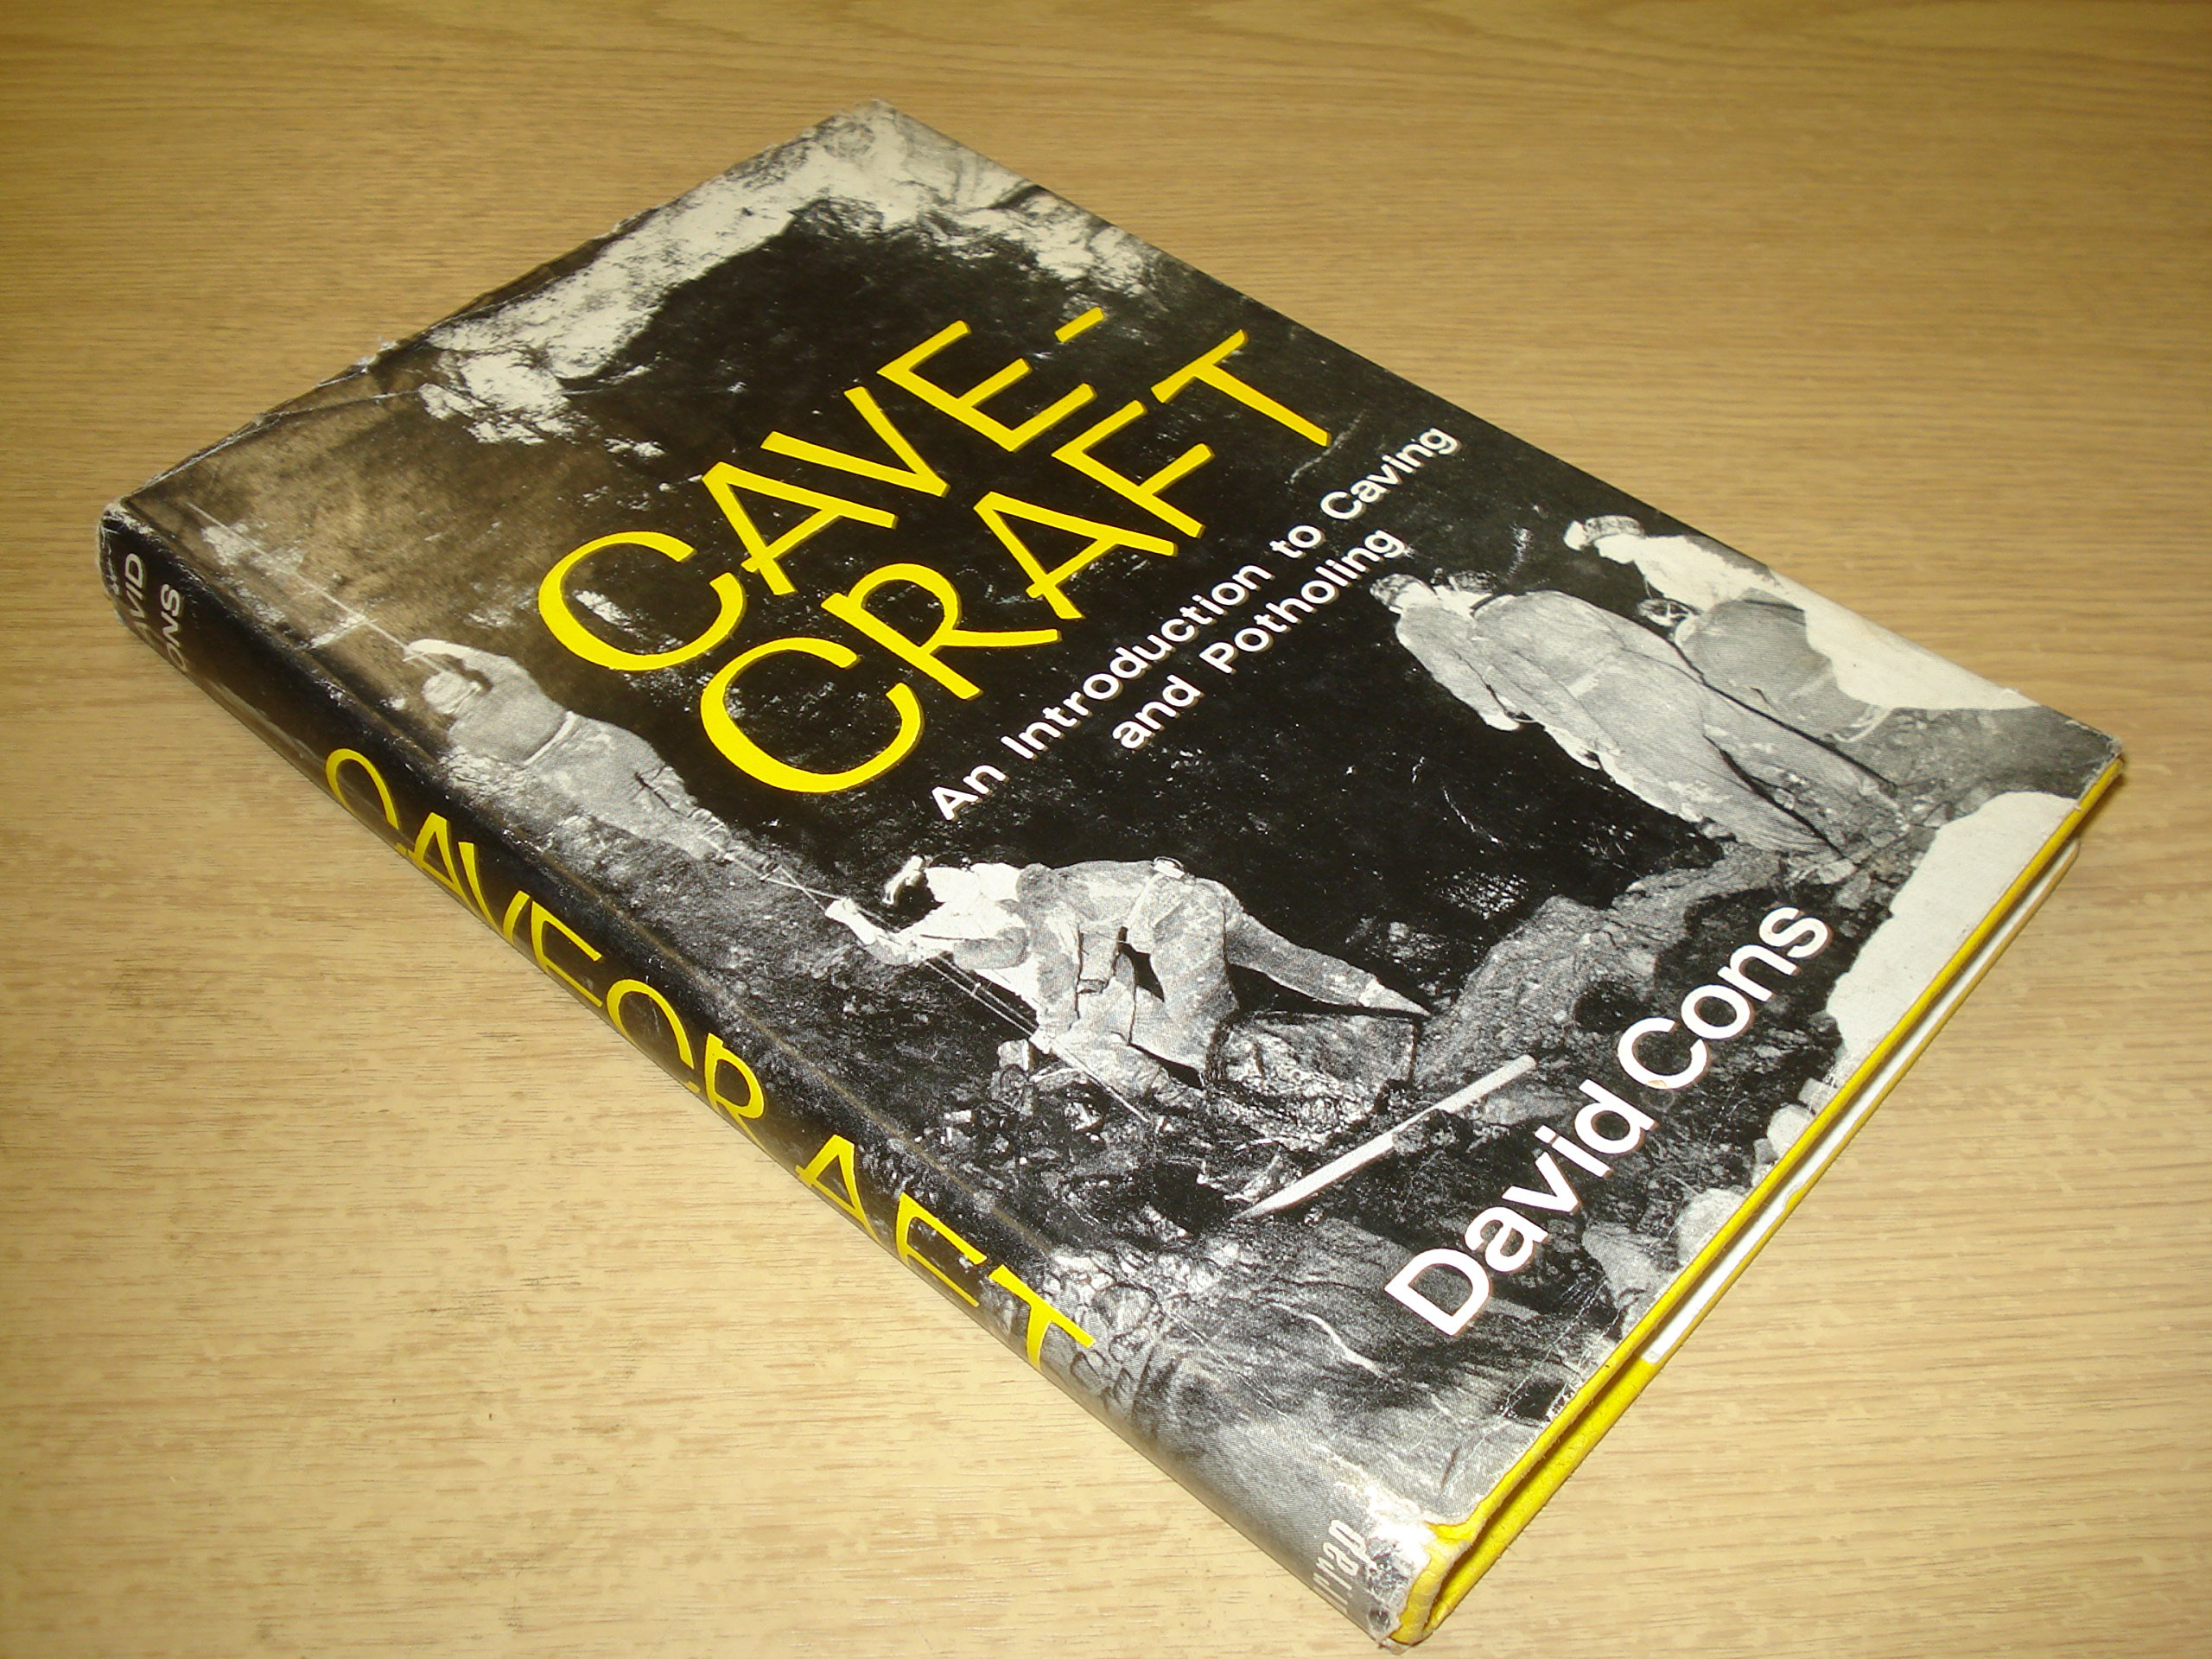 Cavecraft: An Introduction to Caving and Potholing by David Cons, David Cons